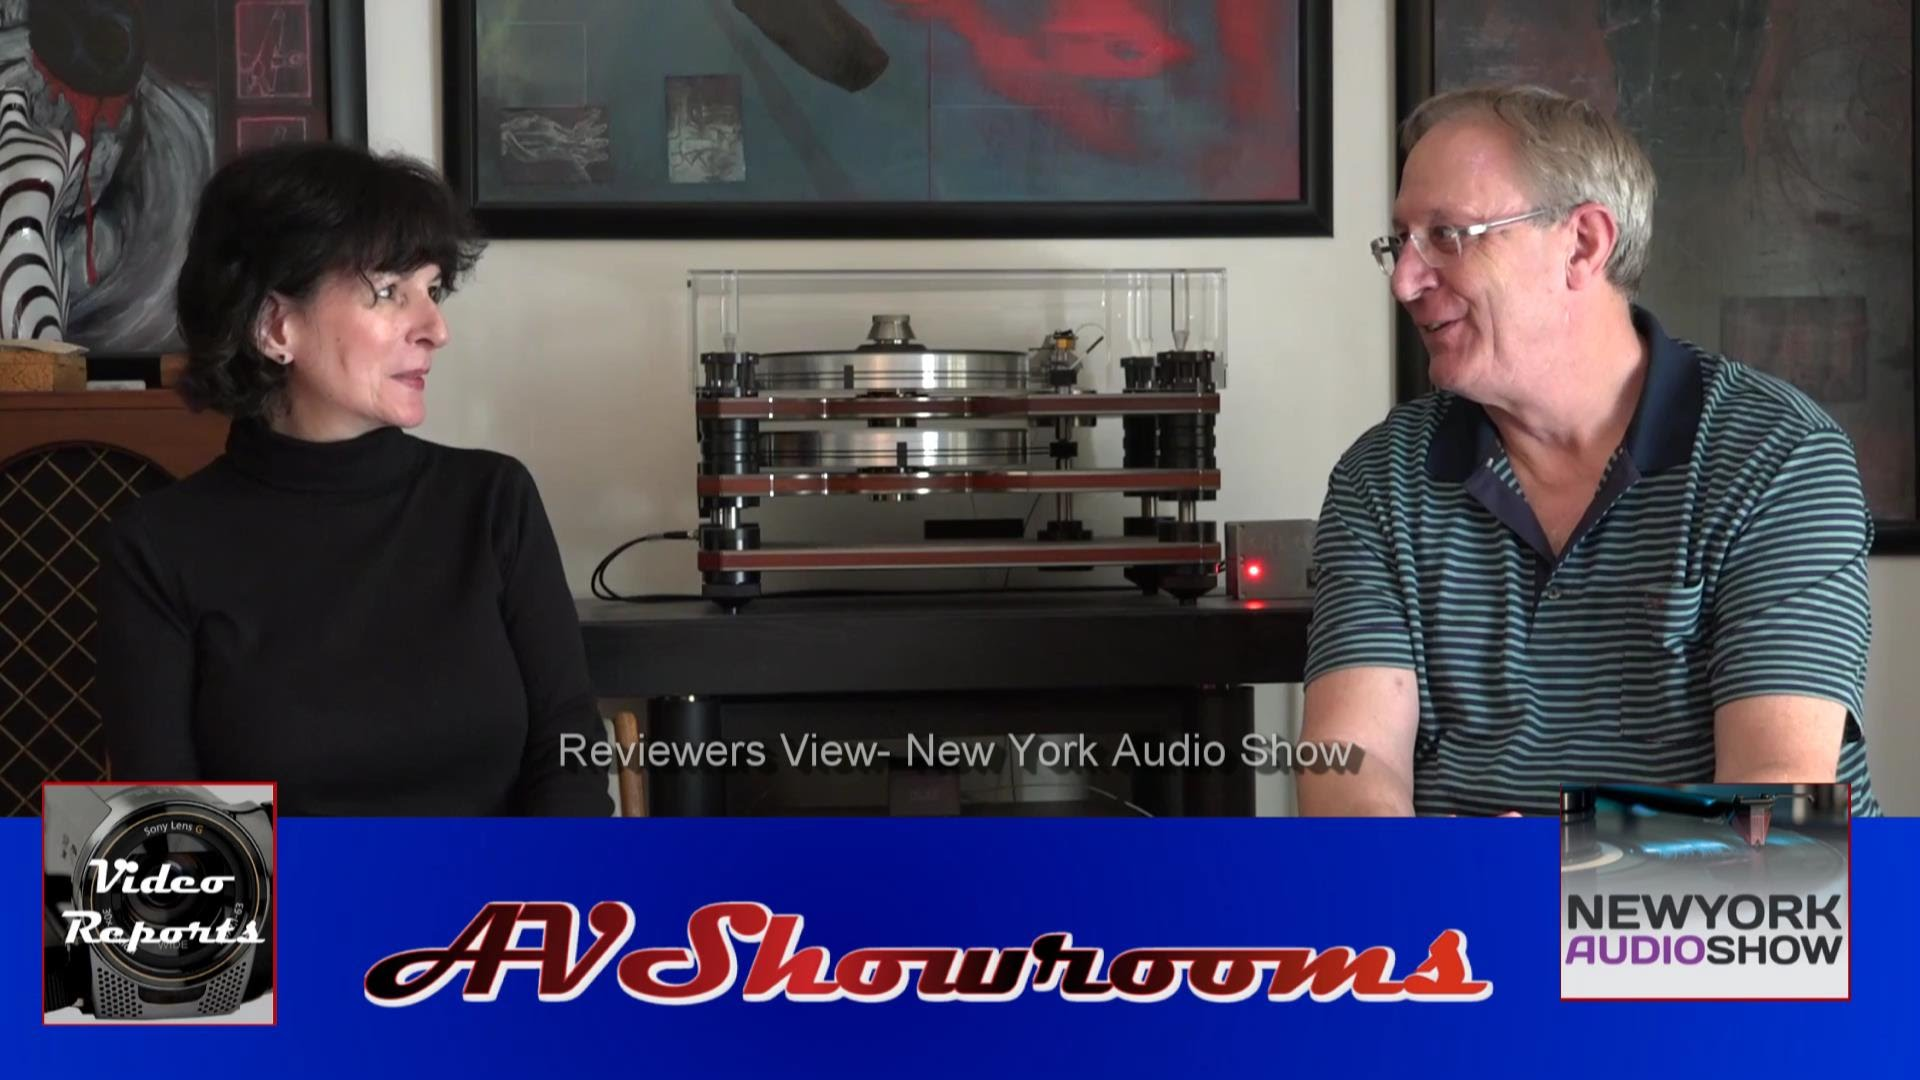 NY Audio Show 2015 Awards